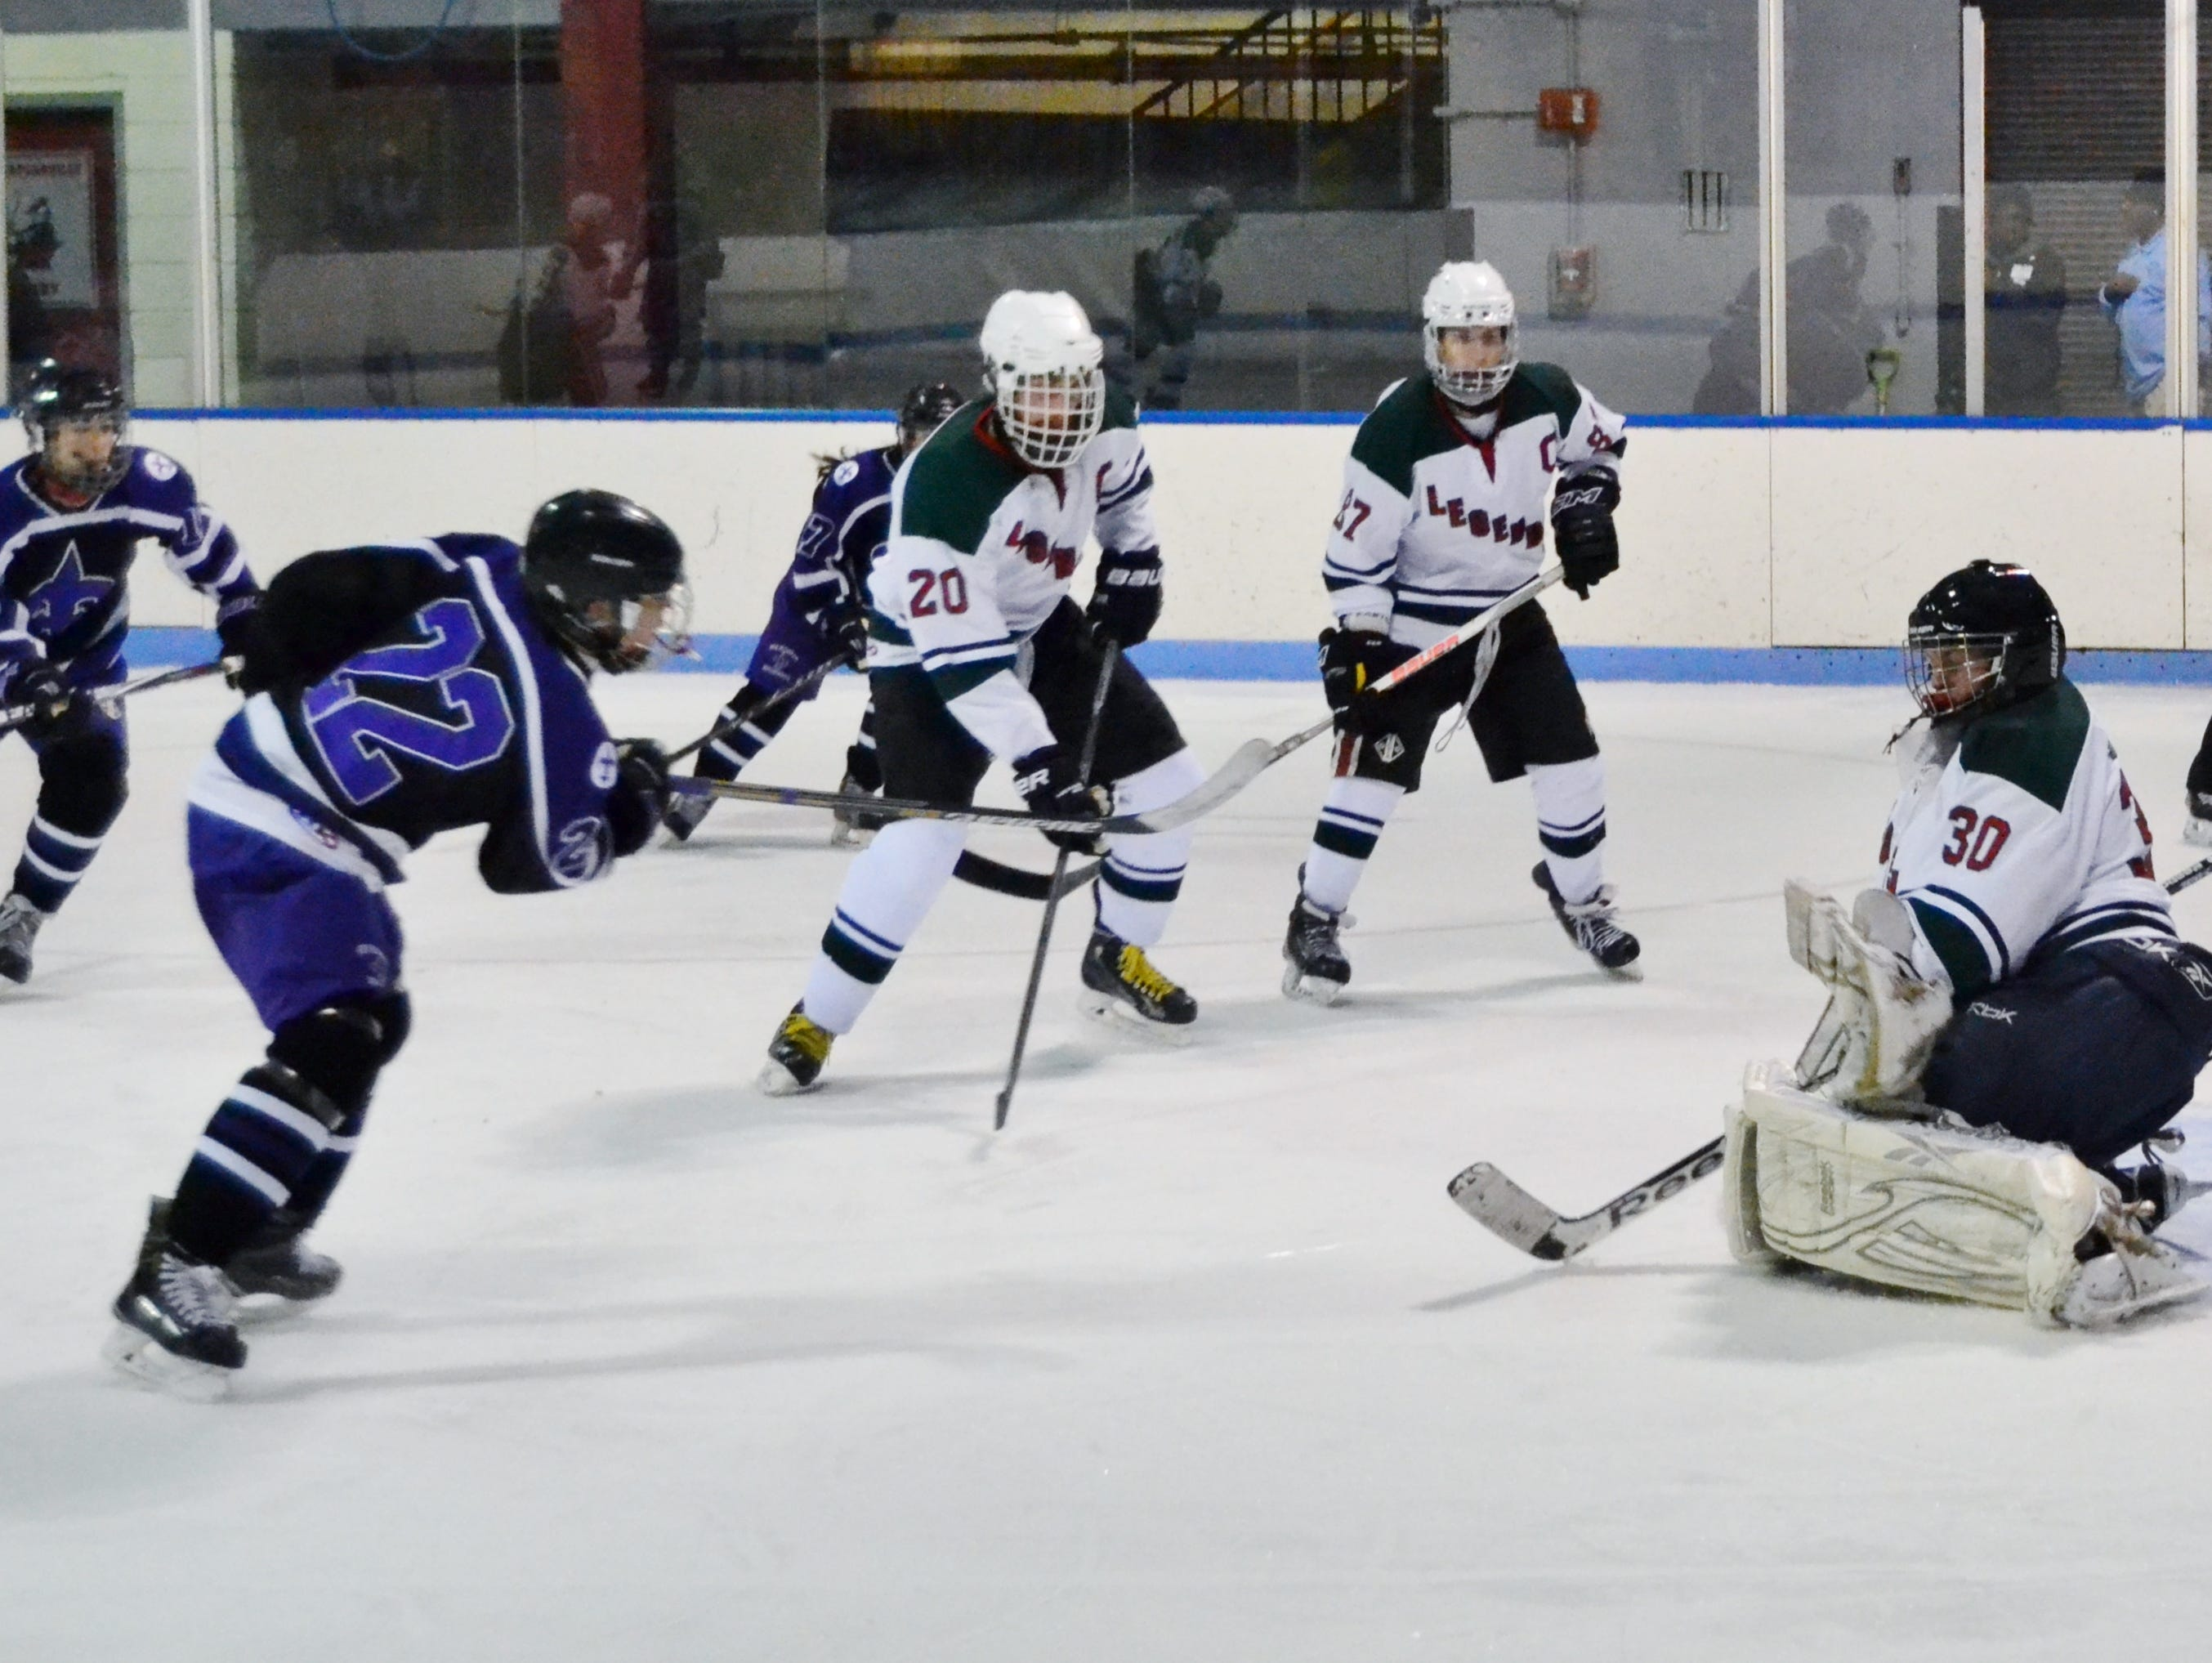 Rivertown goalie Sean Gonder makes a third-period glove save after Steven Kroleski comes in clean during a 4-1 Legends win at Playland.